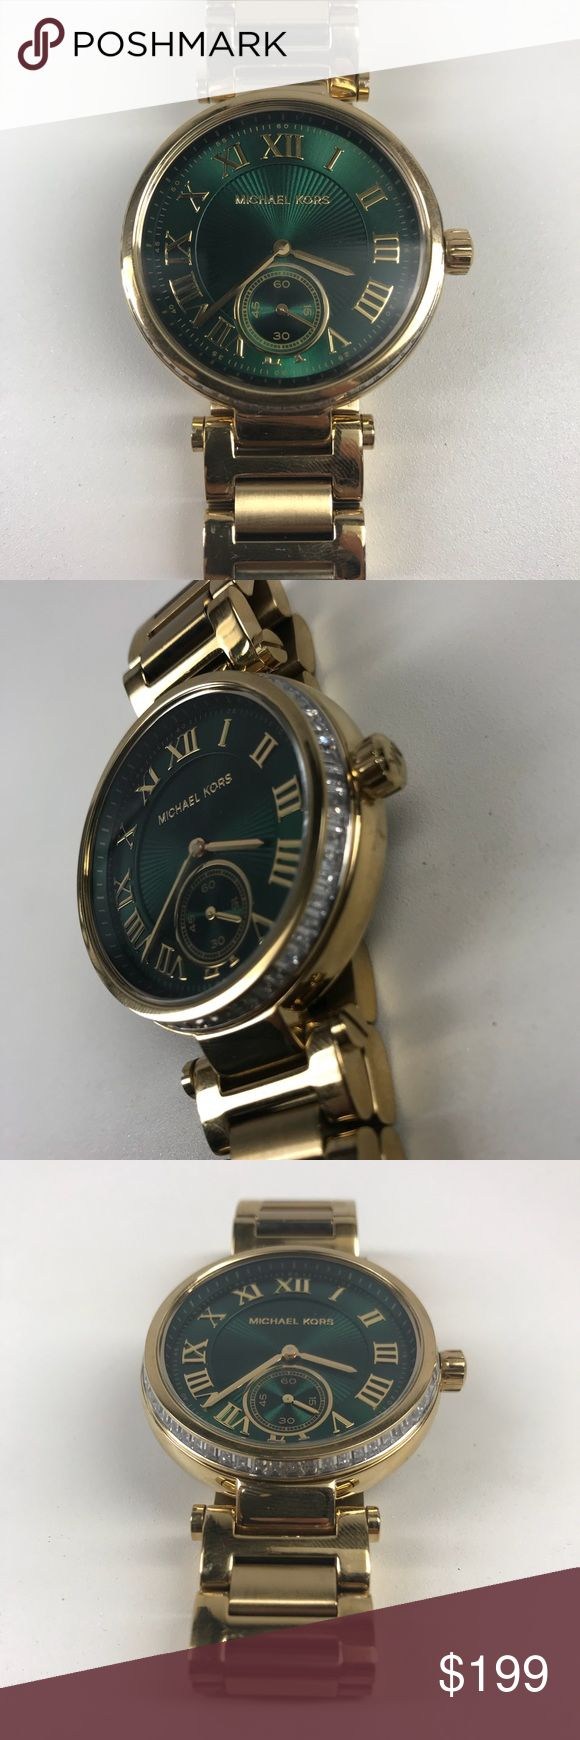 Limited Edition Green Dial Michael Kors Watch Model #: MK6065 / Name: Skylar / 100% Authentic Both bold and ultra-feminine, this watch makes a strong statement with its classic gold-tone, roman numeral indexes and a bold emerald sunray dial. A glitz topring adds eye-catching allure. Comes lightly used with minimal scratches and the protective plastic underneath. The crystal is in good condition.   *Price is negotiable! Just send me an offer.  - No extra links, needs a new battery and does…